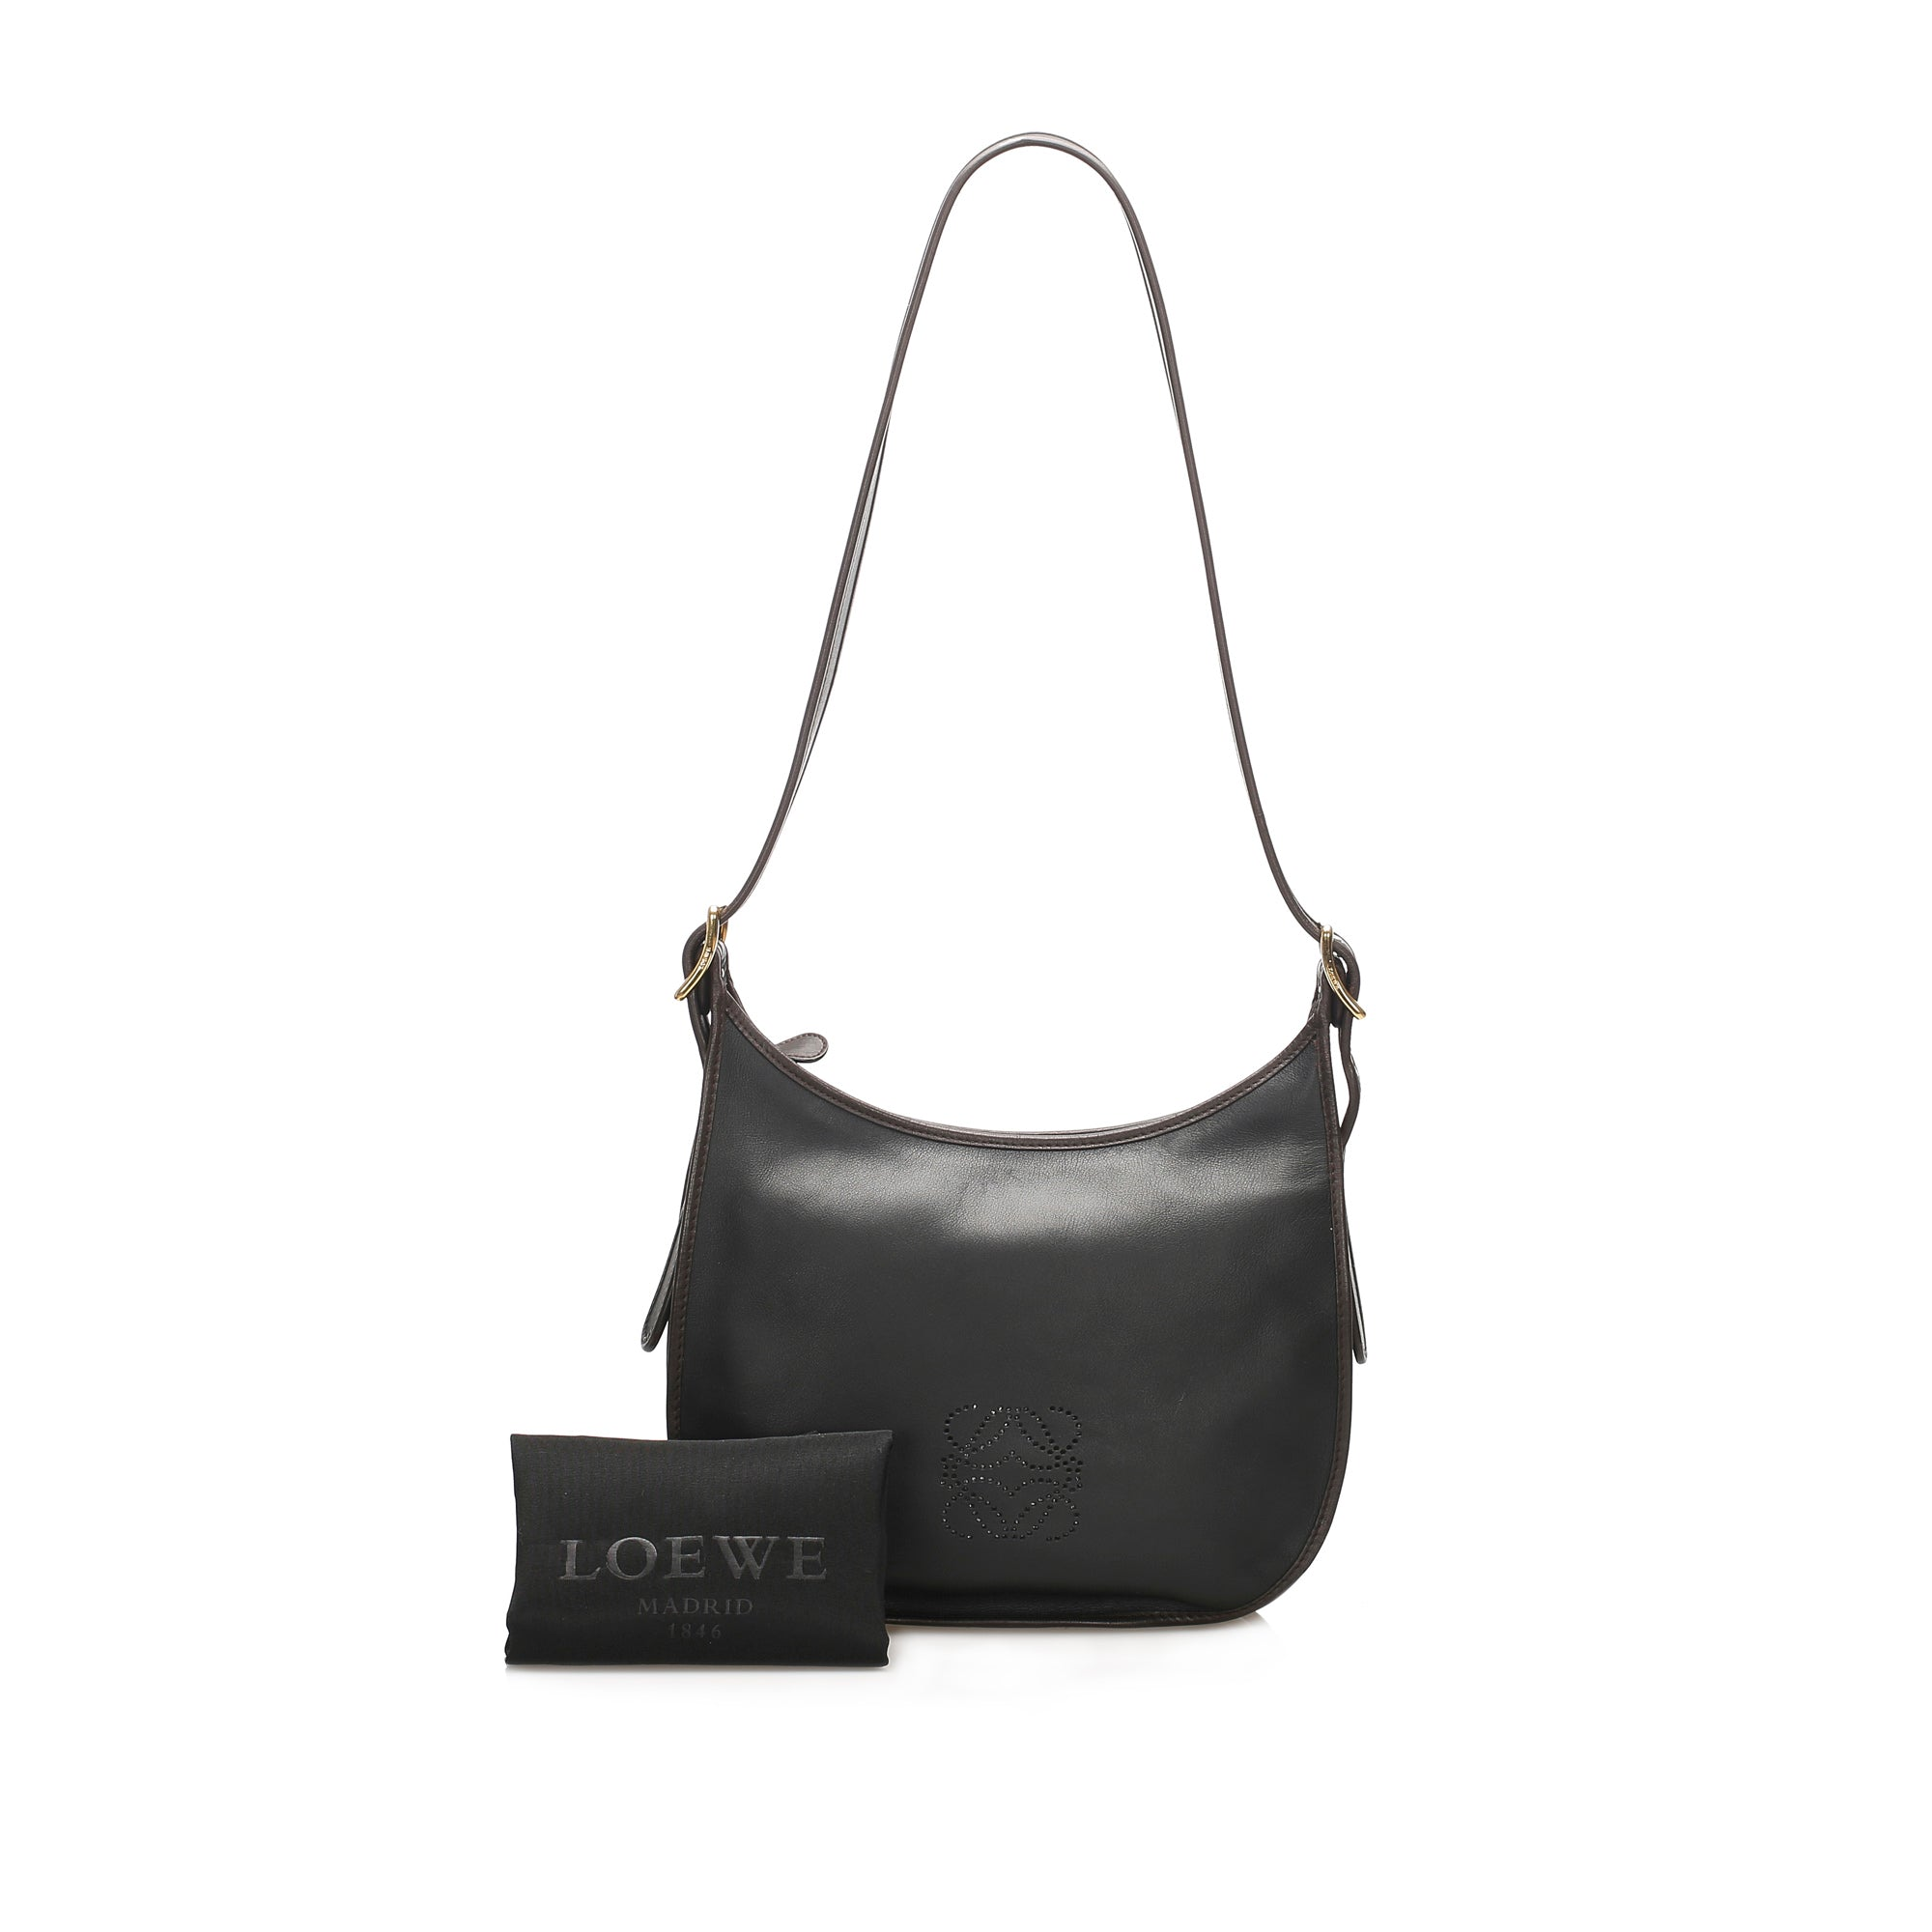 Loewe Black Anagram Sofia Leather Crossbody Bag